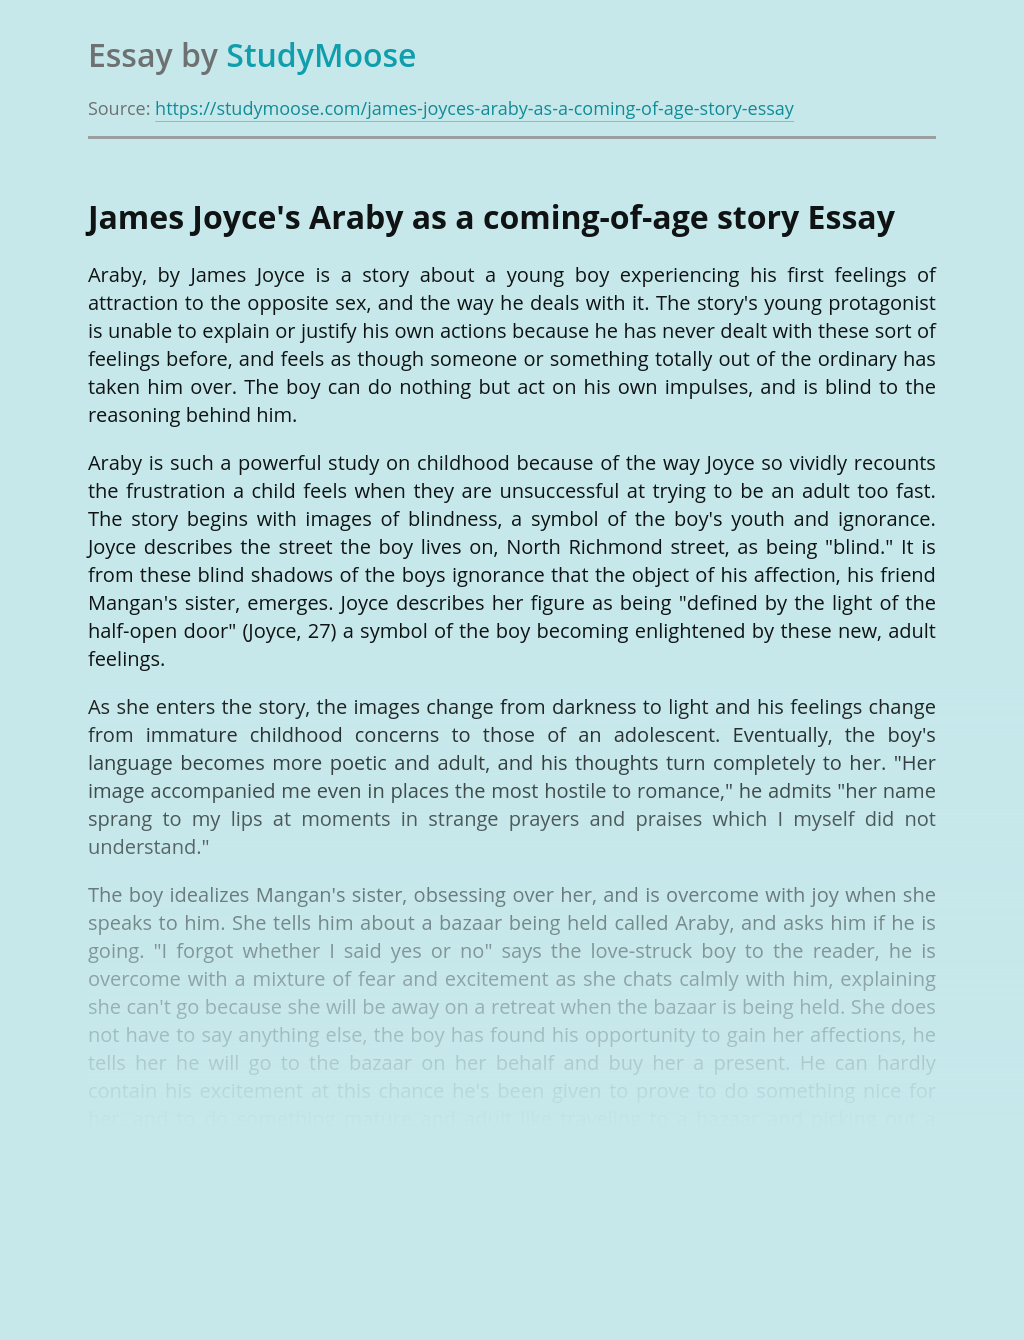 James Joyce's Araby as a coming-of-age story